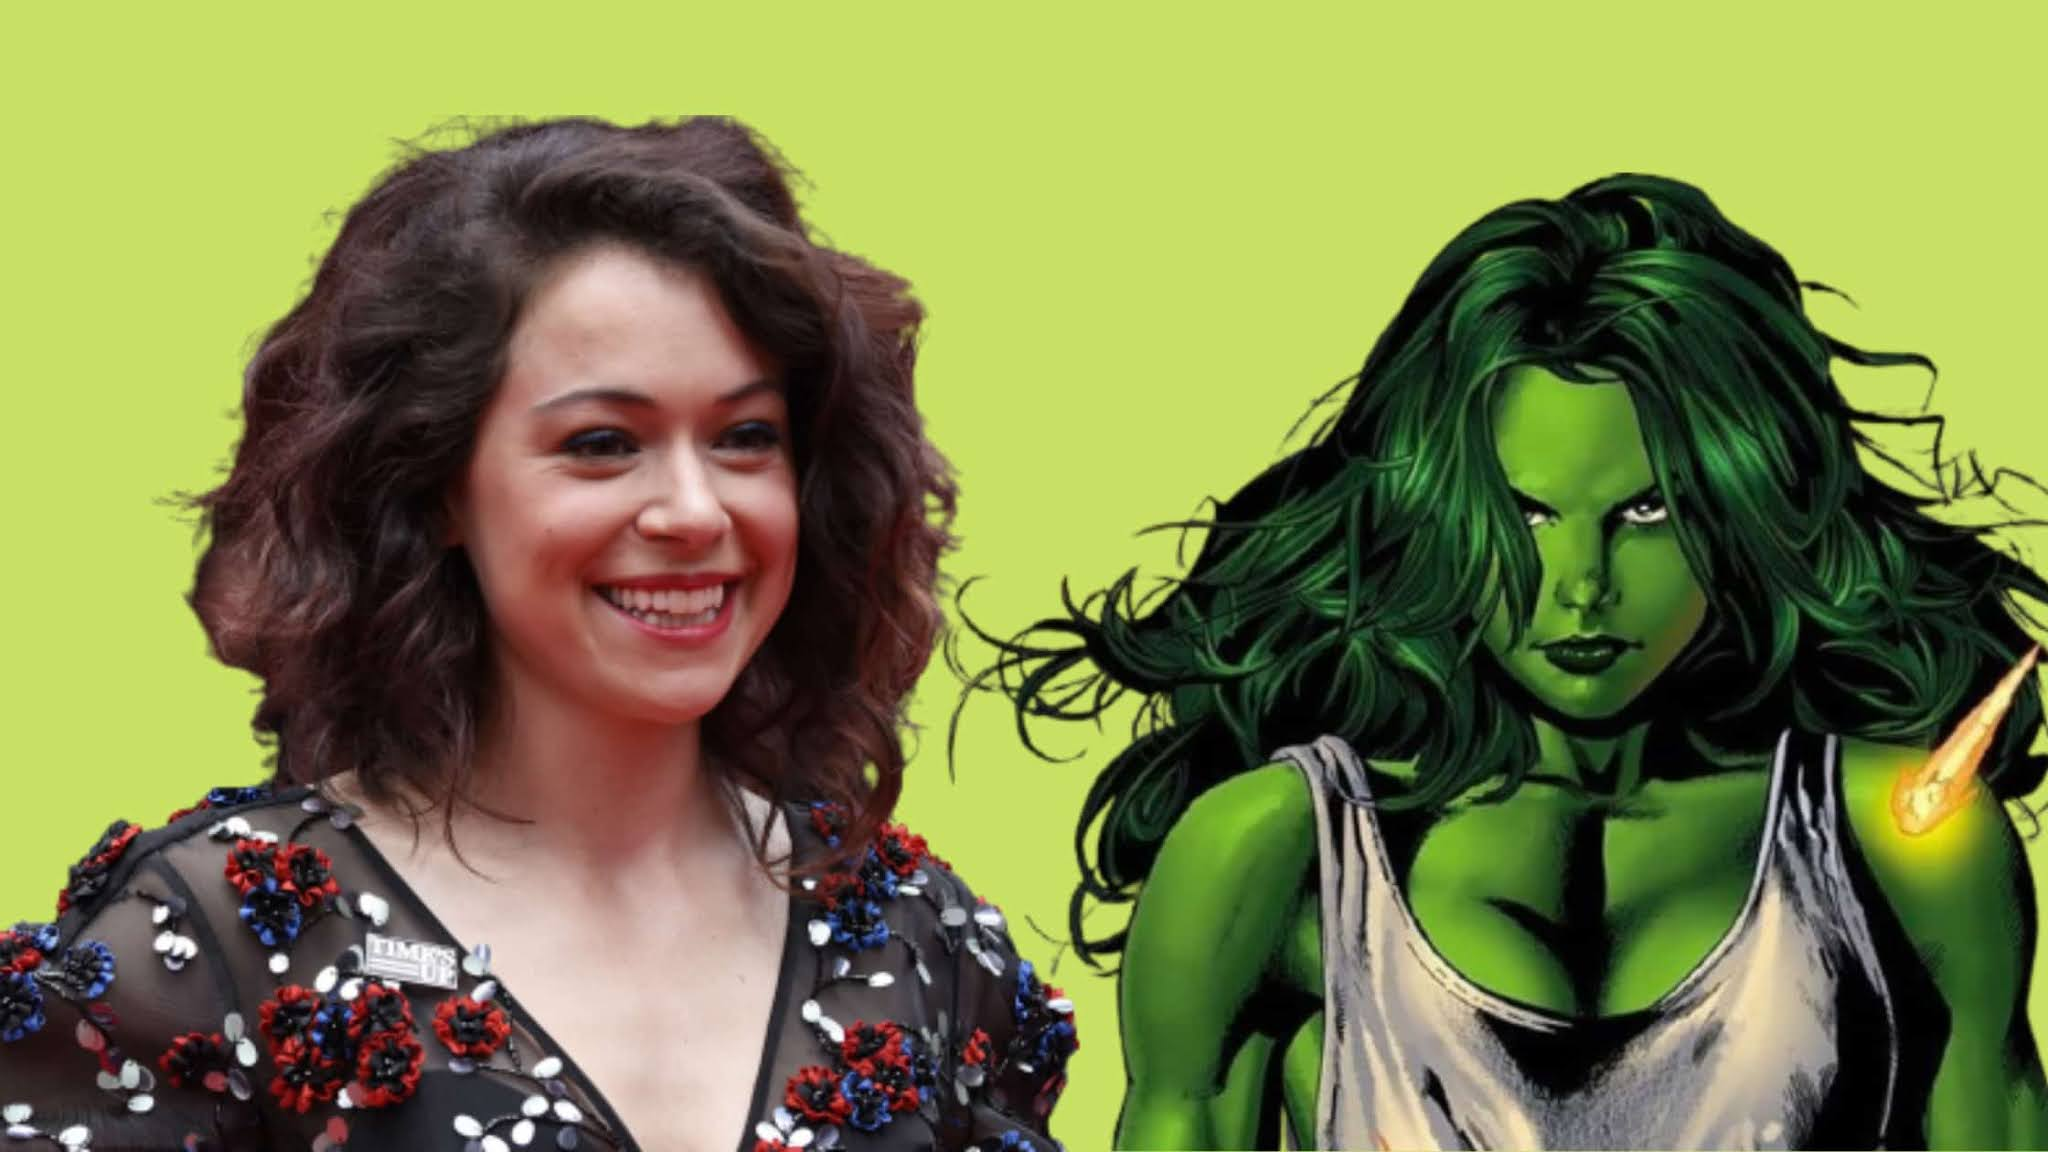 MCU's upcoming series She hulk now get the lead.Orphan Black actor Tatiana Maslany would play She Hulk in Disney+ new series She Hulk.